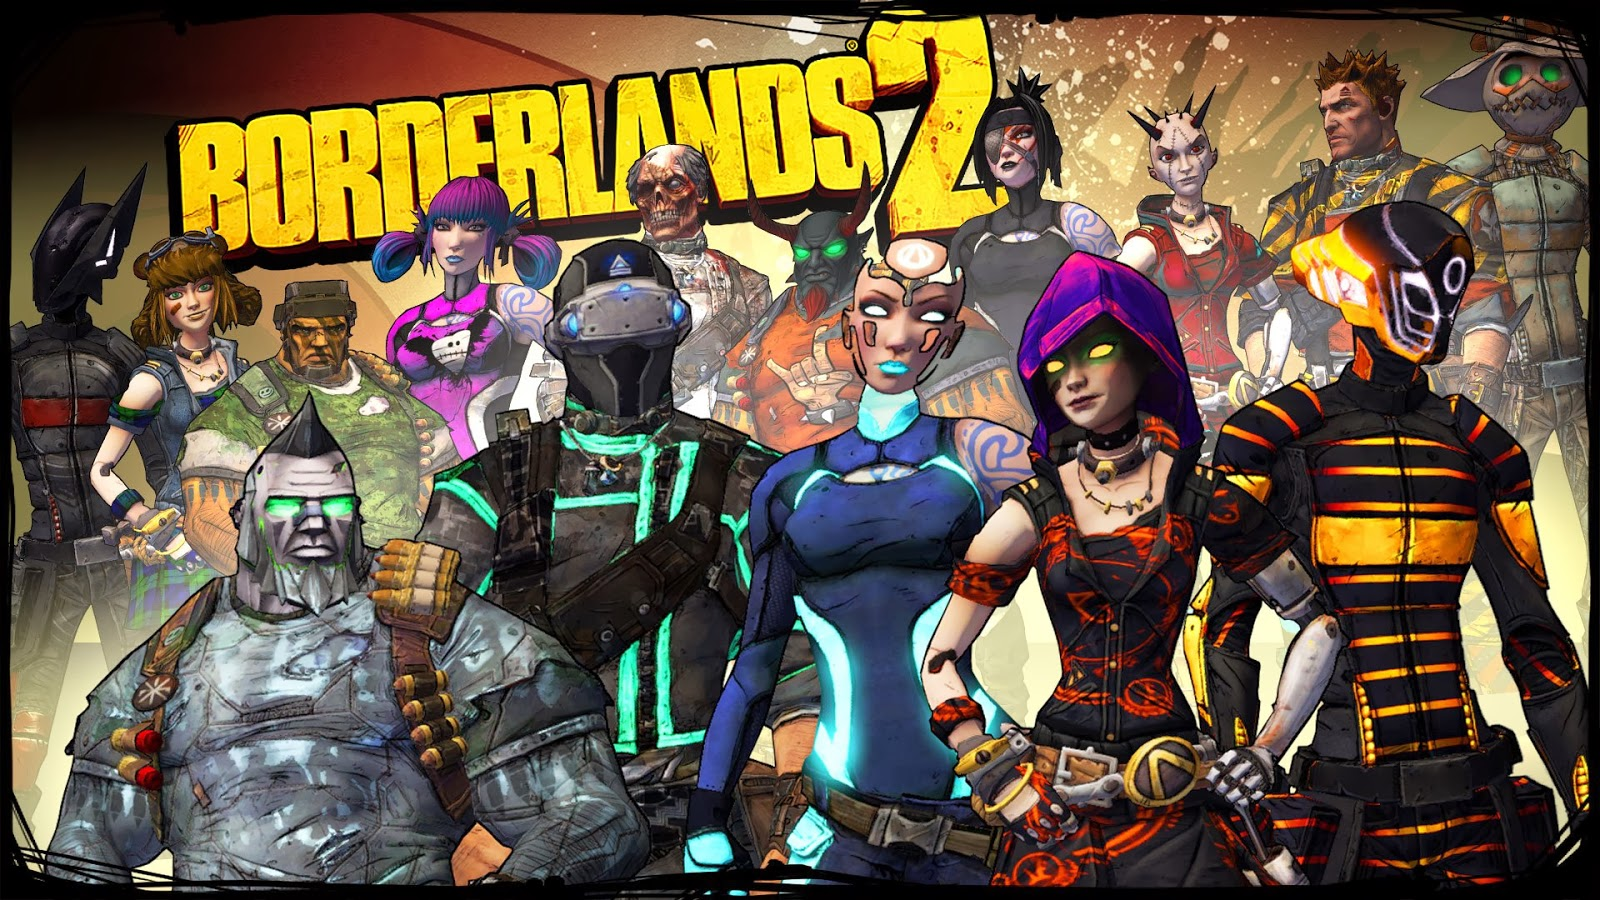 download Borderlands 2 torrent from here.